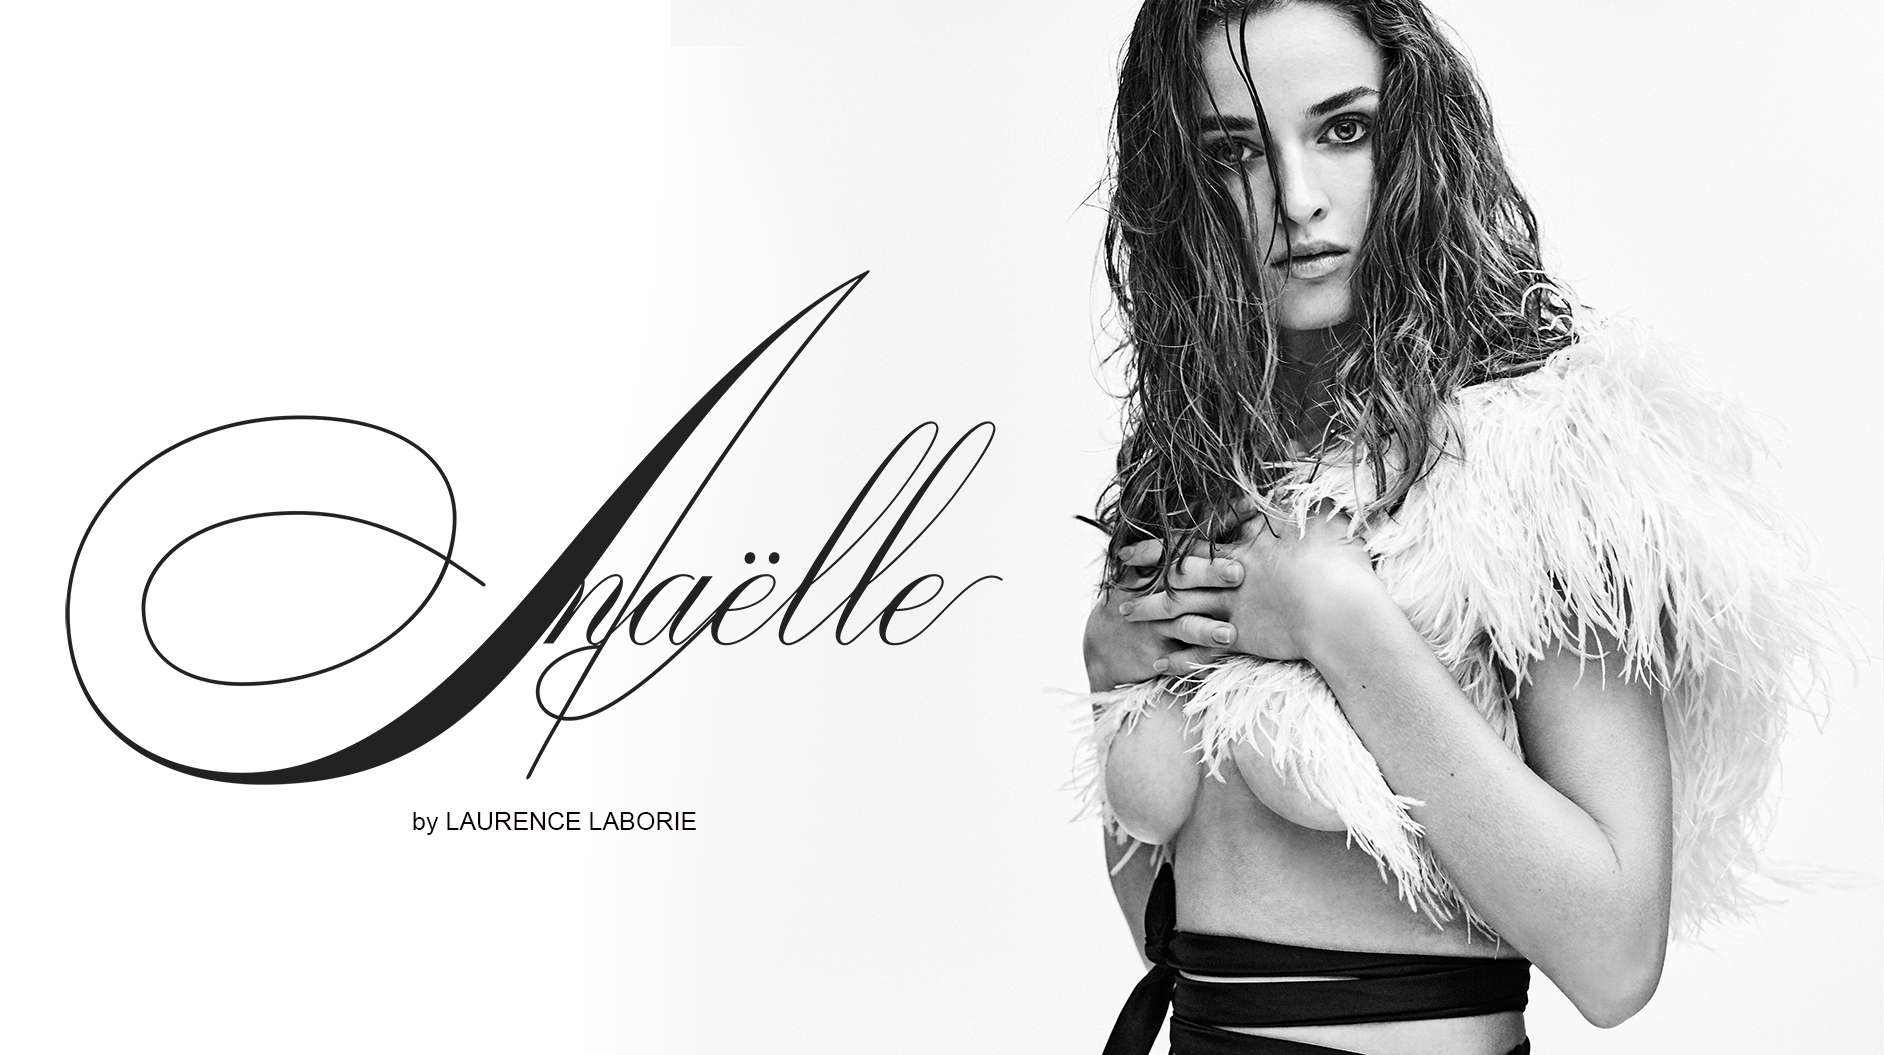 Anaelle by Laurence Laborie